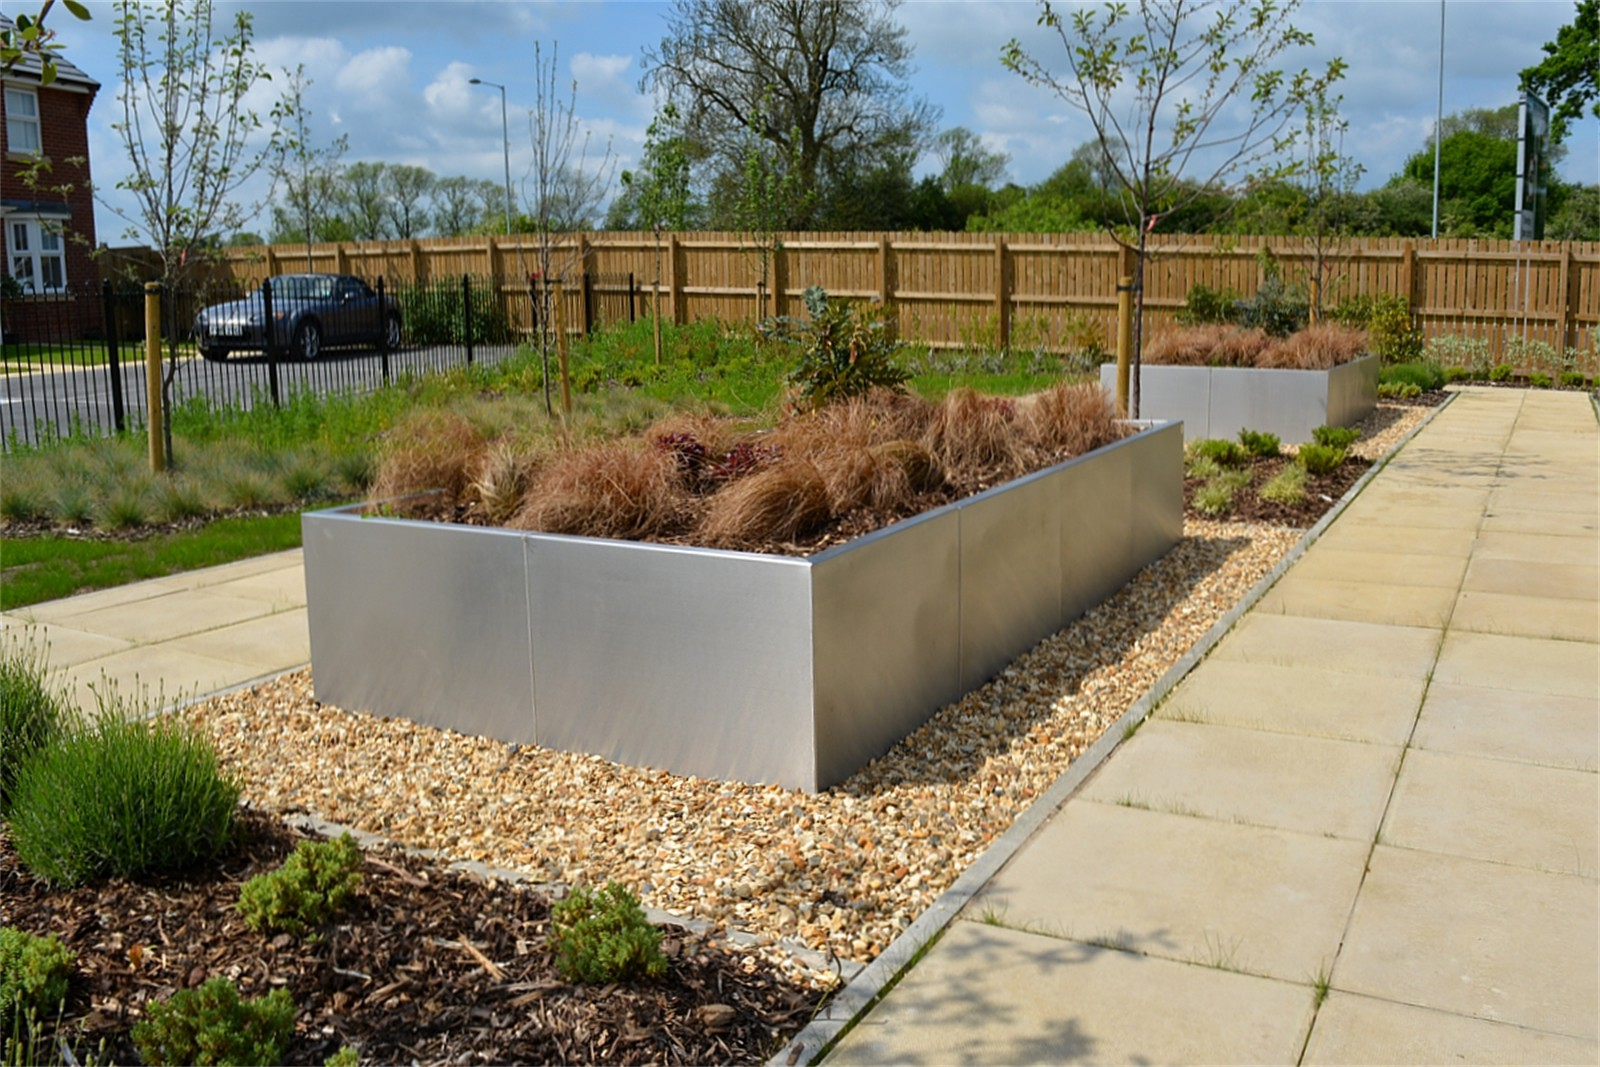 33p13 - Gretton stainless steel planter walling